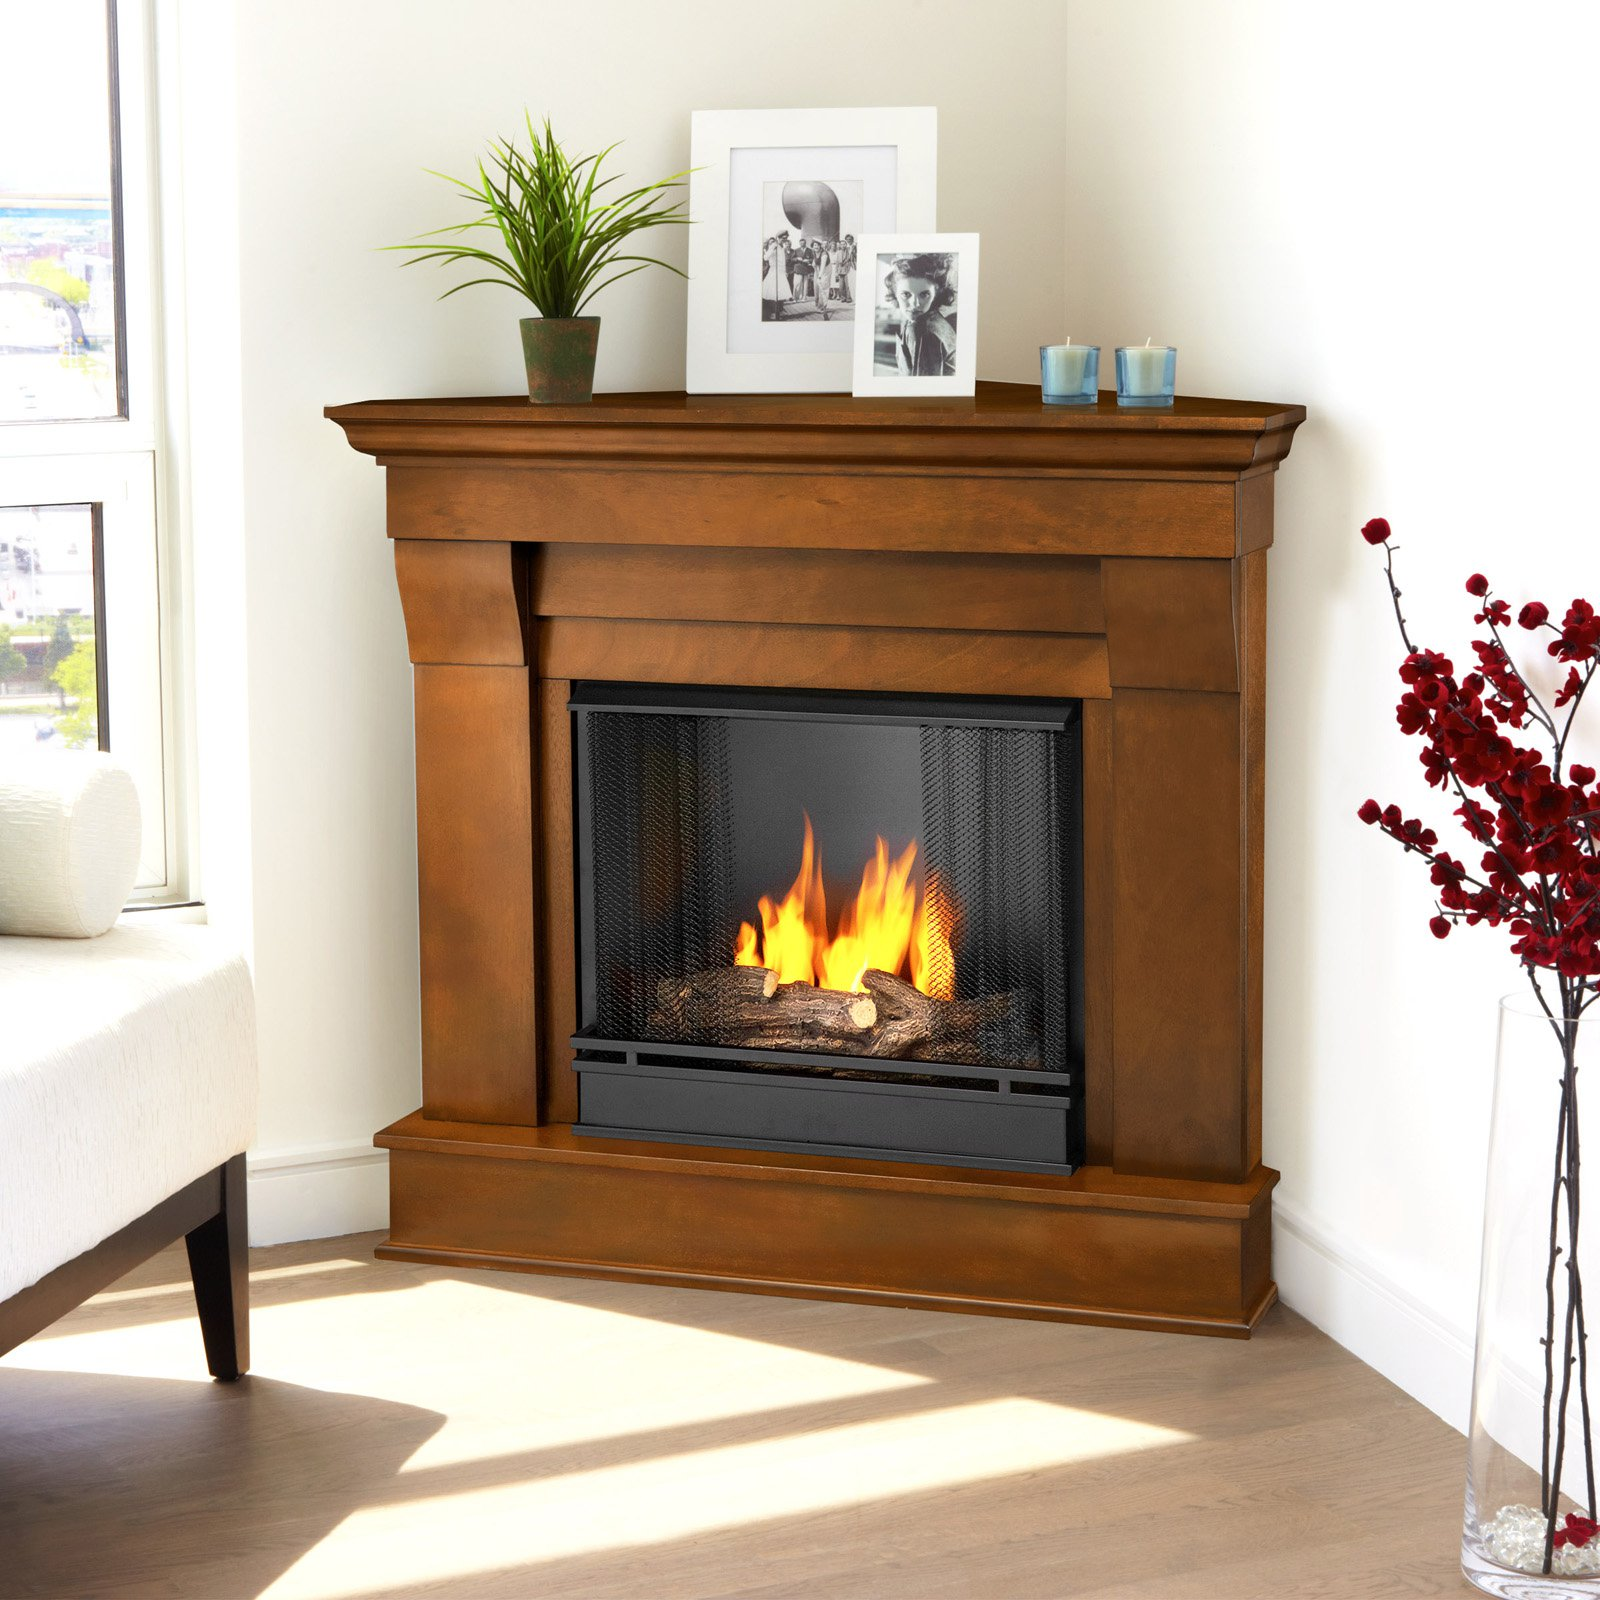 Free Shipping. Buy Real Flame Chateau Corner Ventless Gel Fireplace - Espresso at Walmart.com